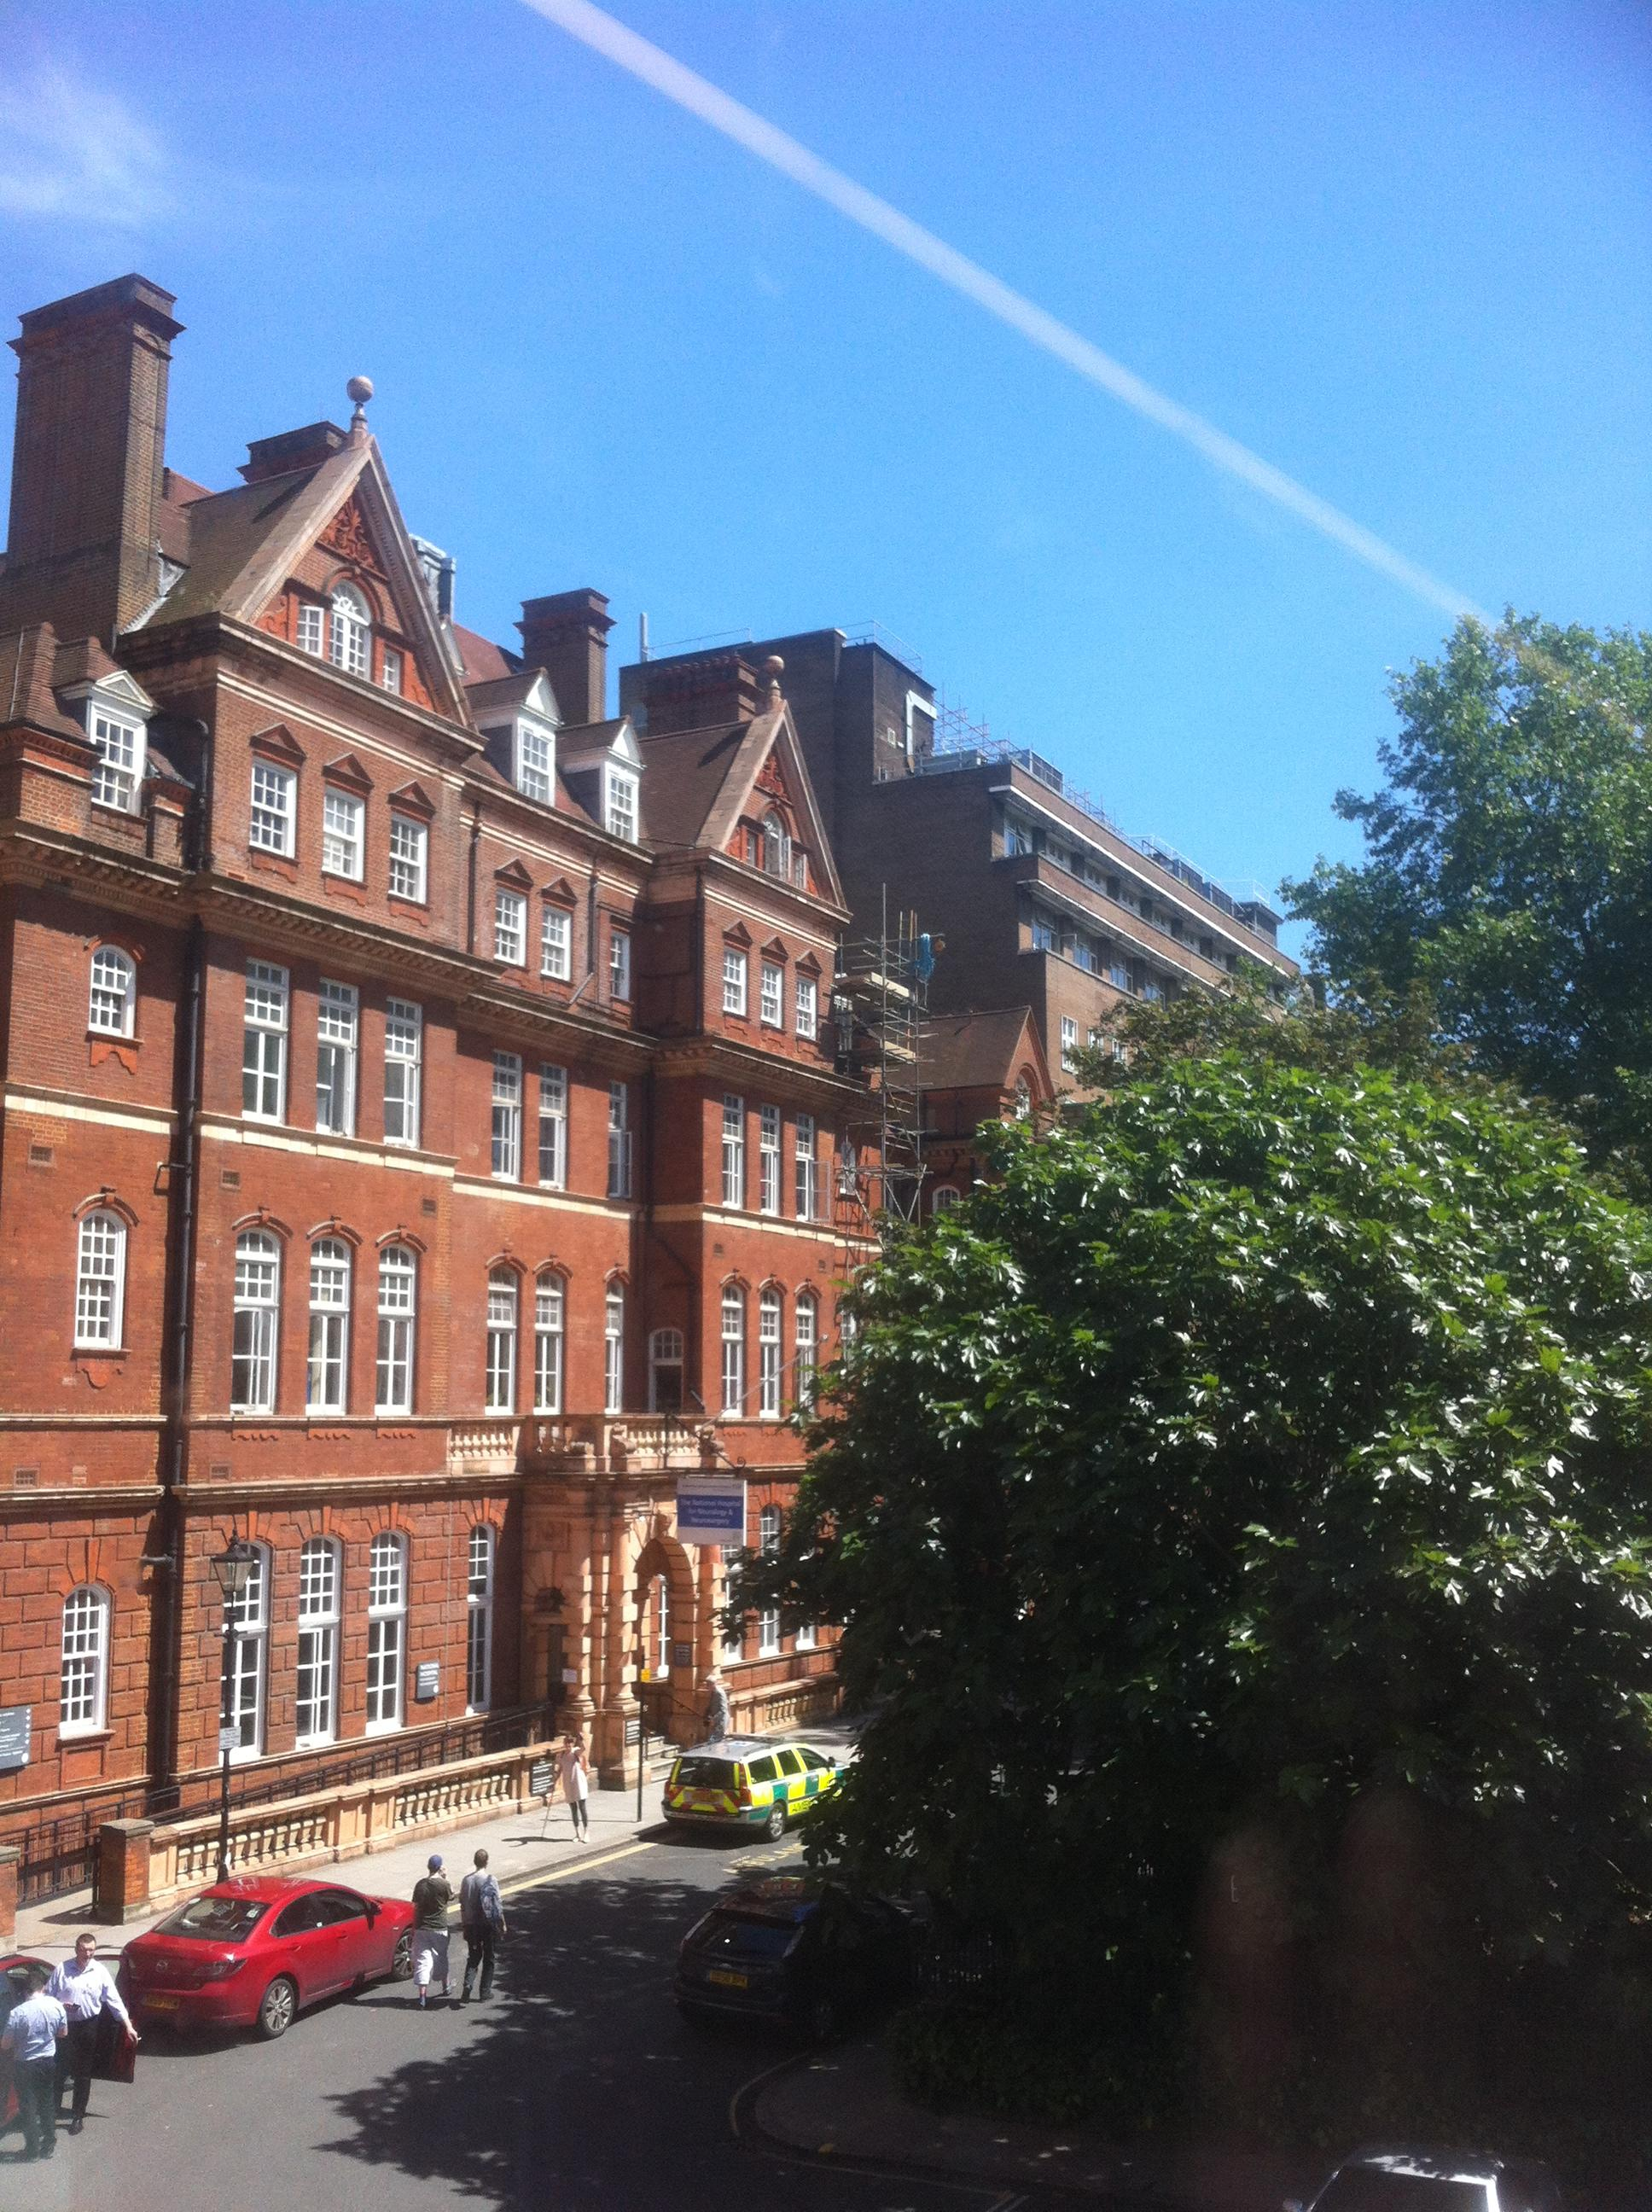 The National Hospital for Neurology & Neurosurgery in London's Queen Square